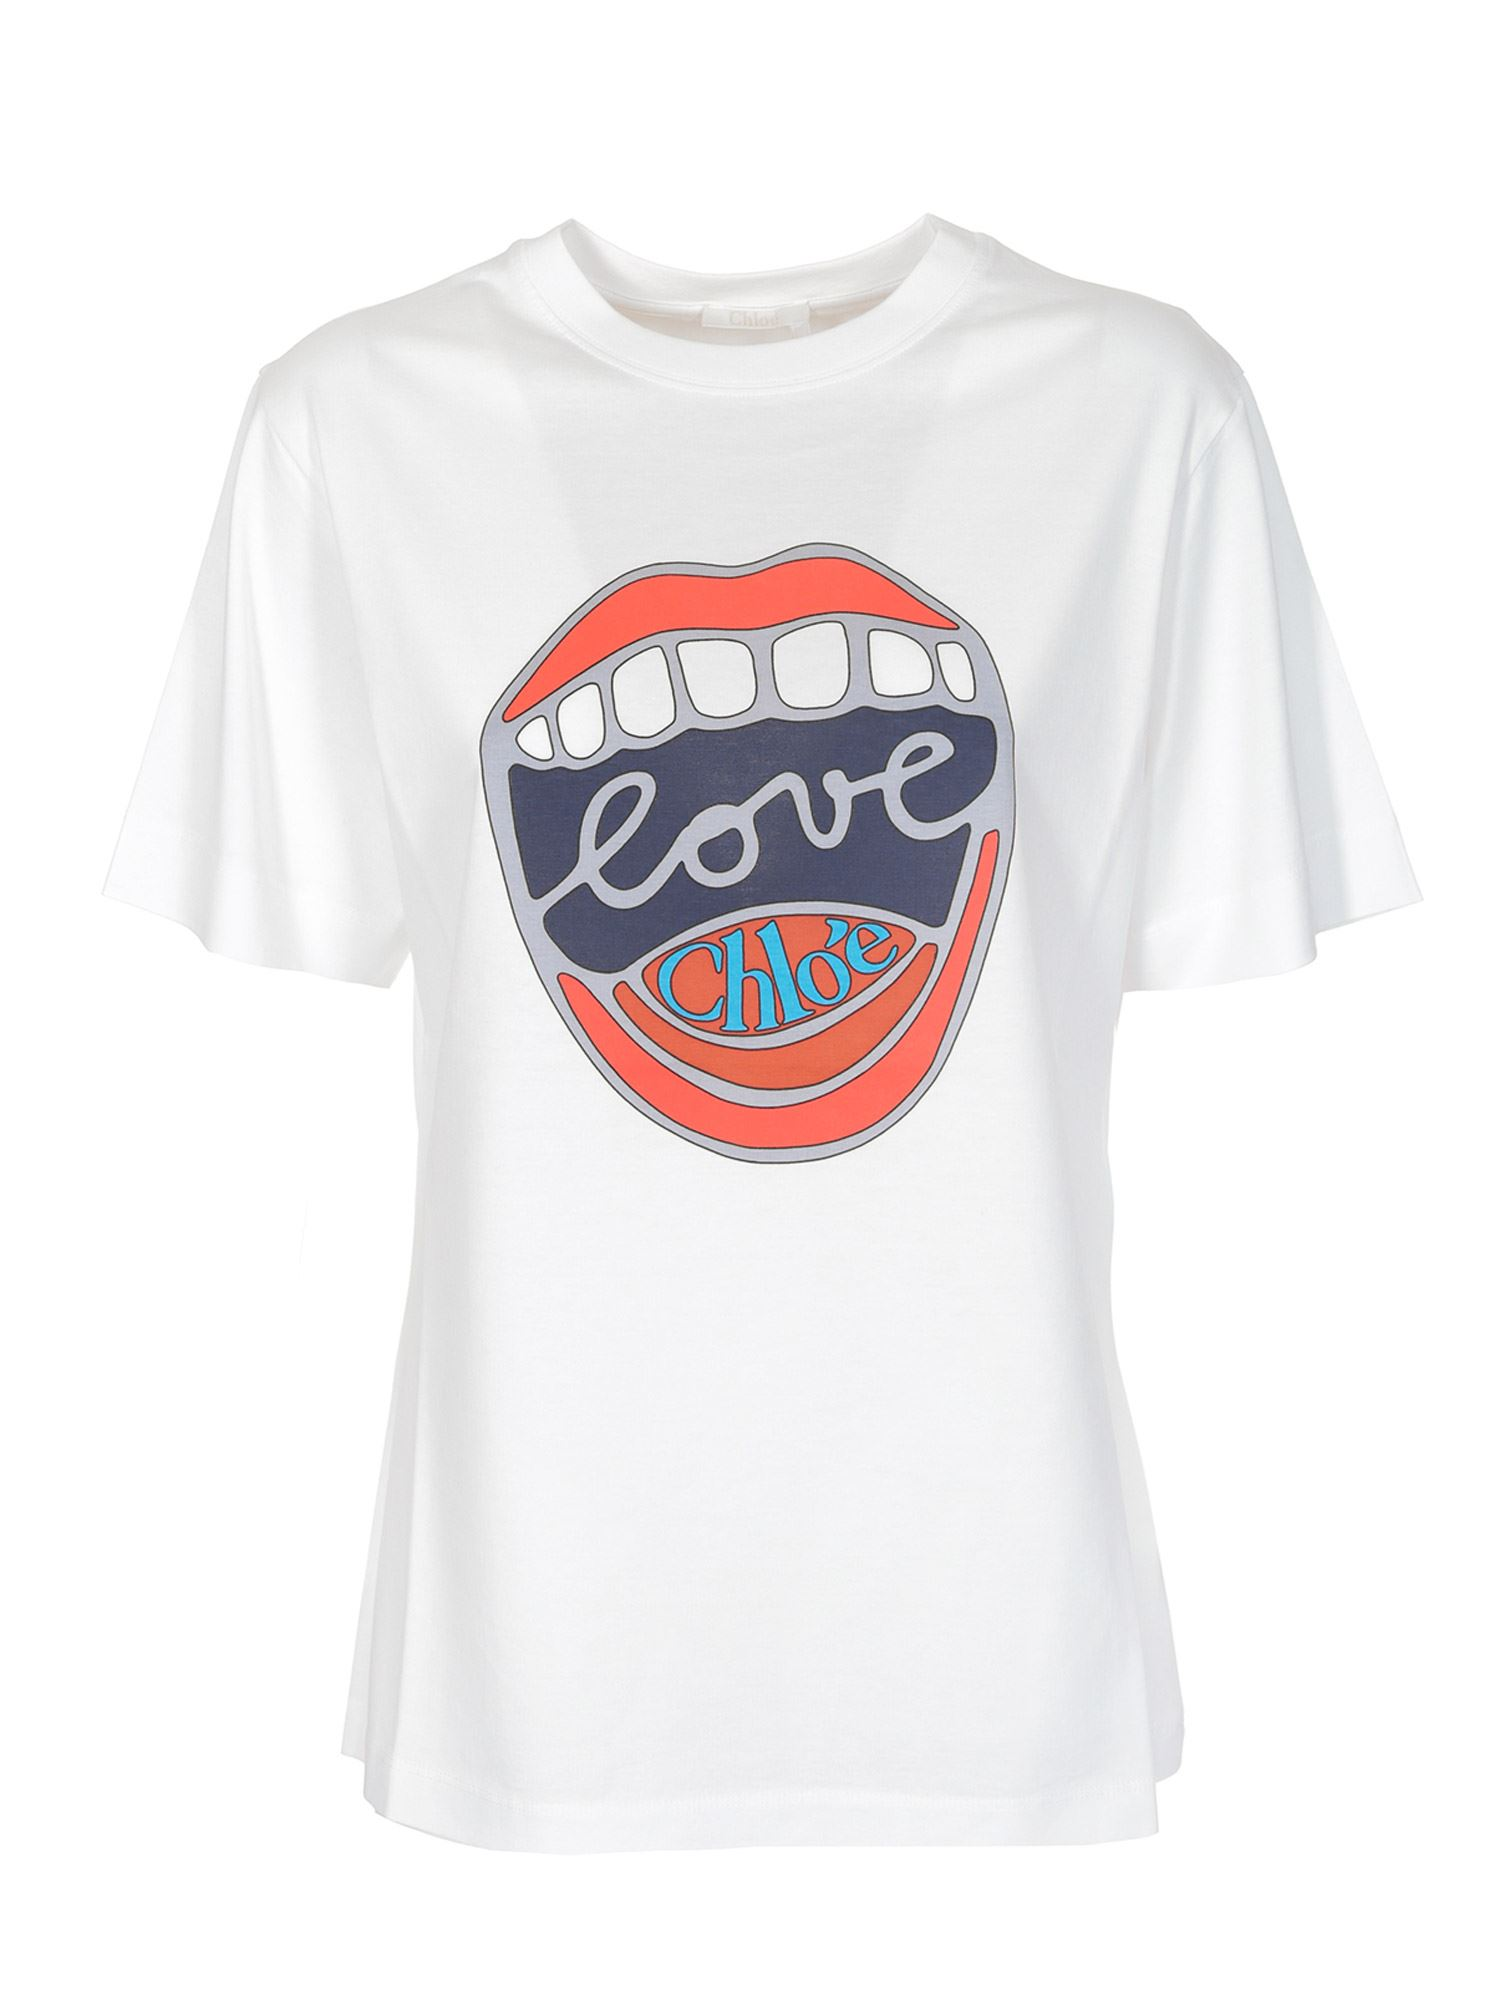 Chloé Cottons LOVE T-SHIRT IN WHITE